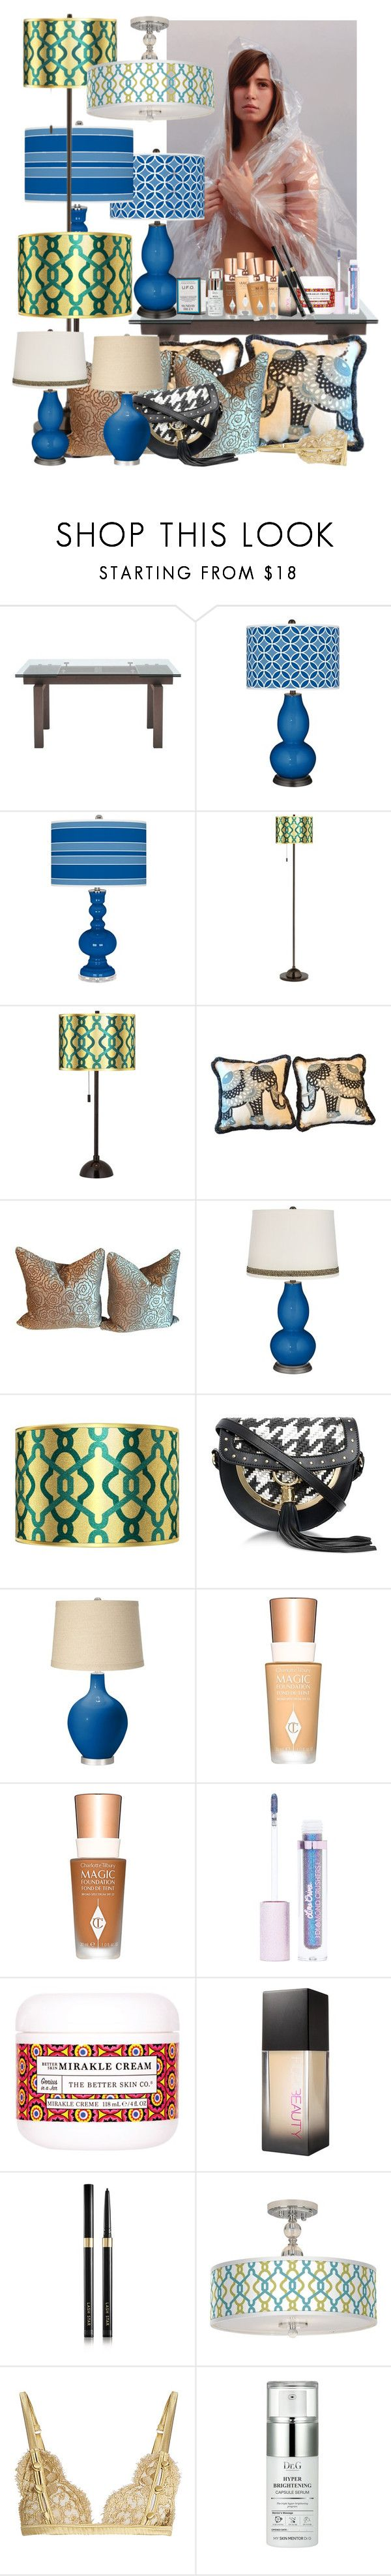 """Asleep At The Mall"" by aryana ❤ liked on Polyvore featuring interior, interiors, interior design, home, home decor, interior decorating, CALLIGARIS, Giclee Gallery, Balmain and Charlotte Tilbury"